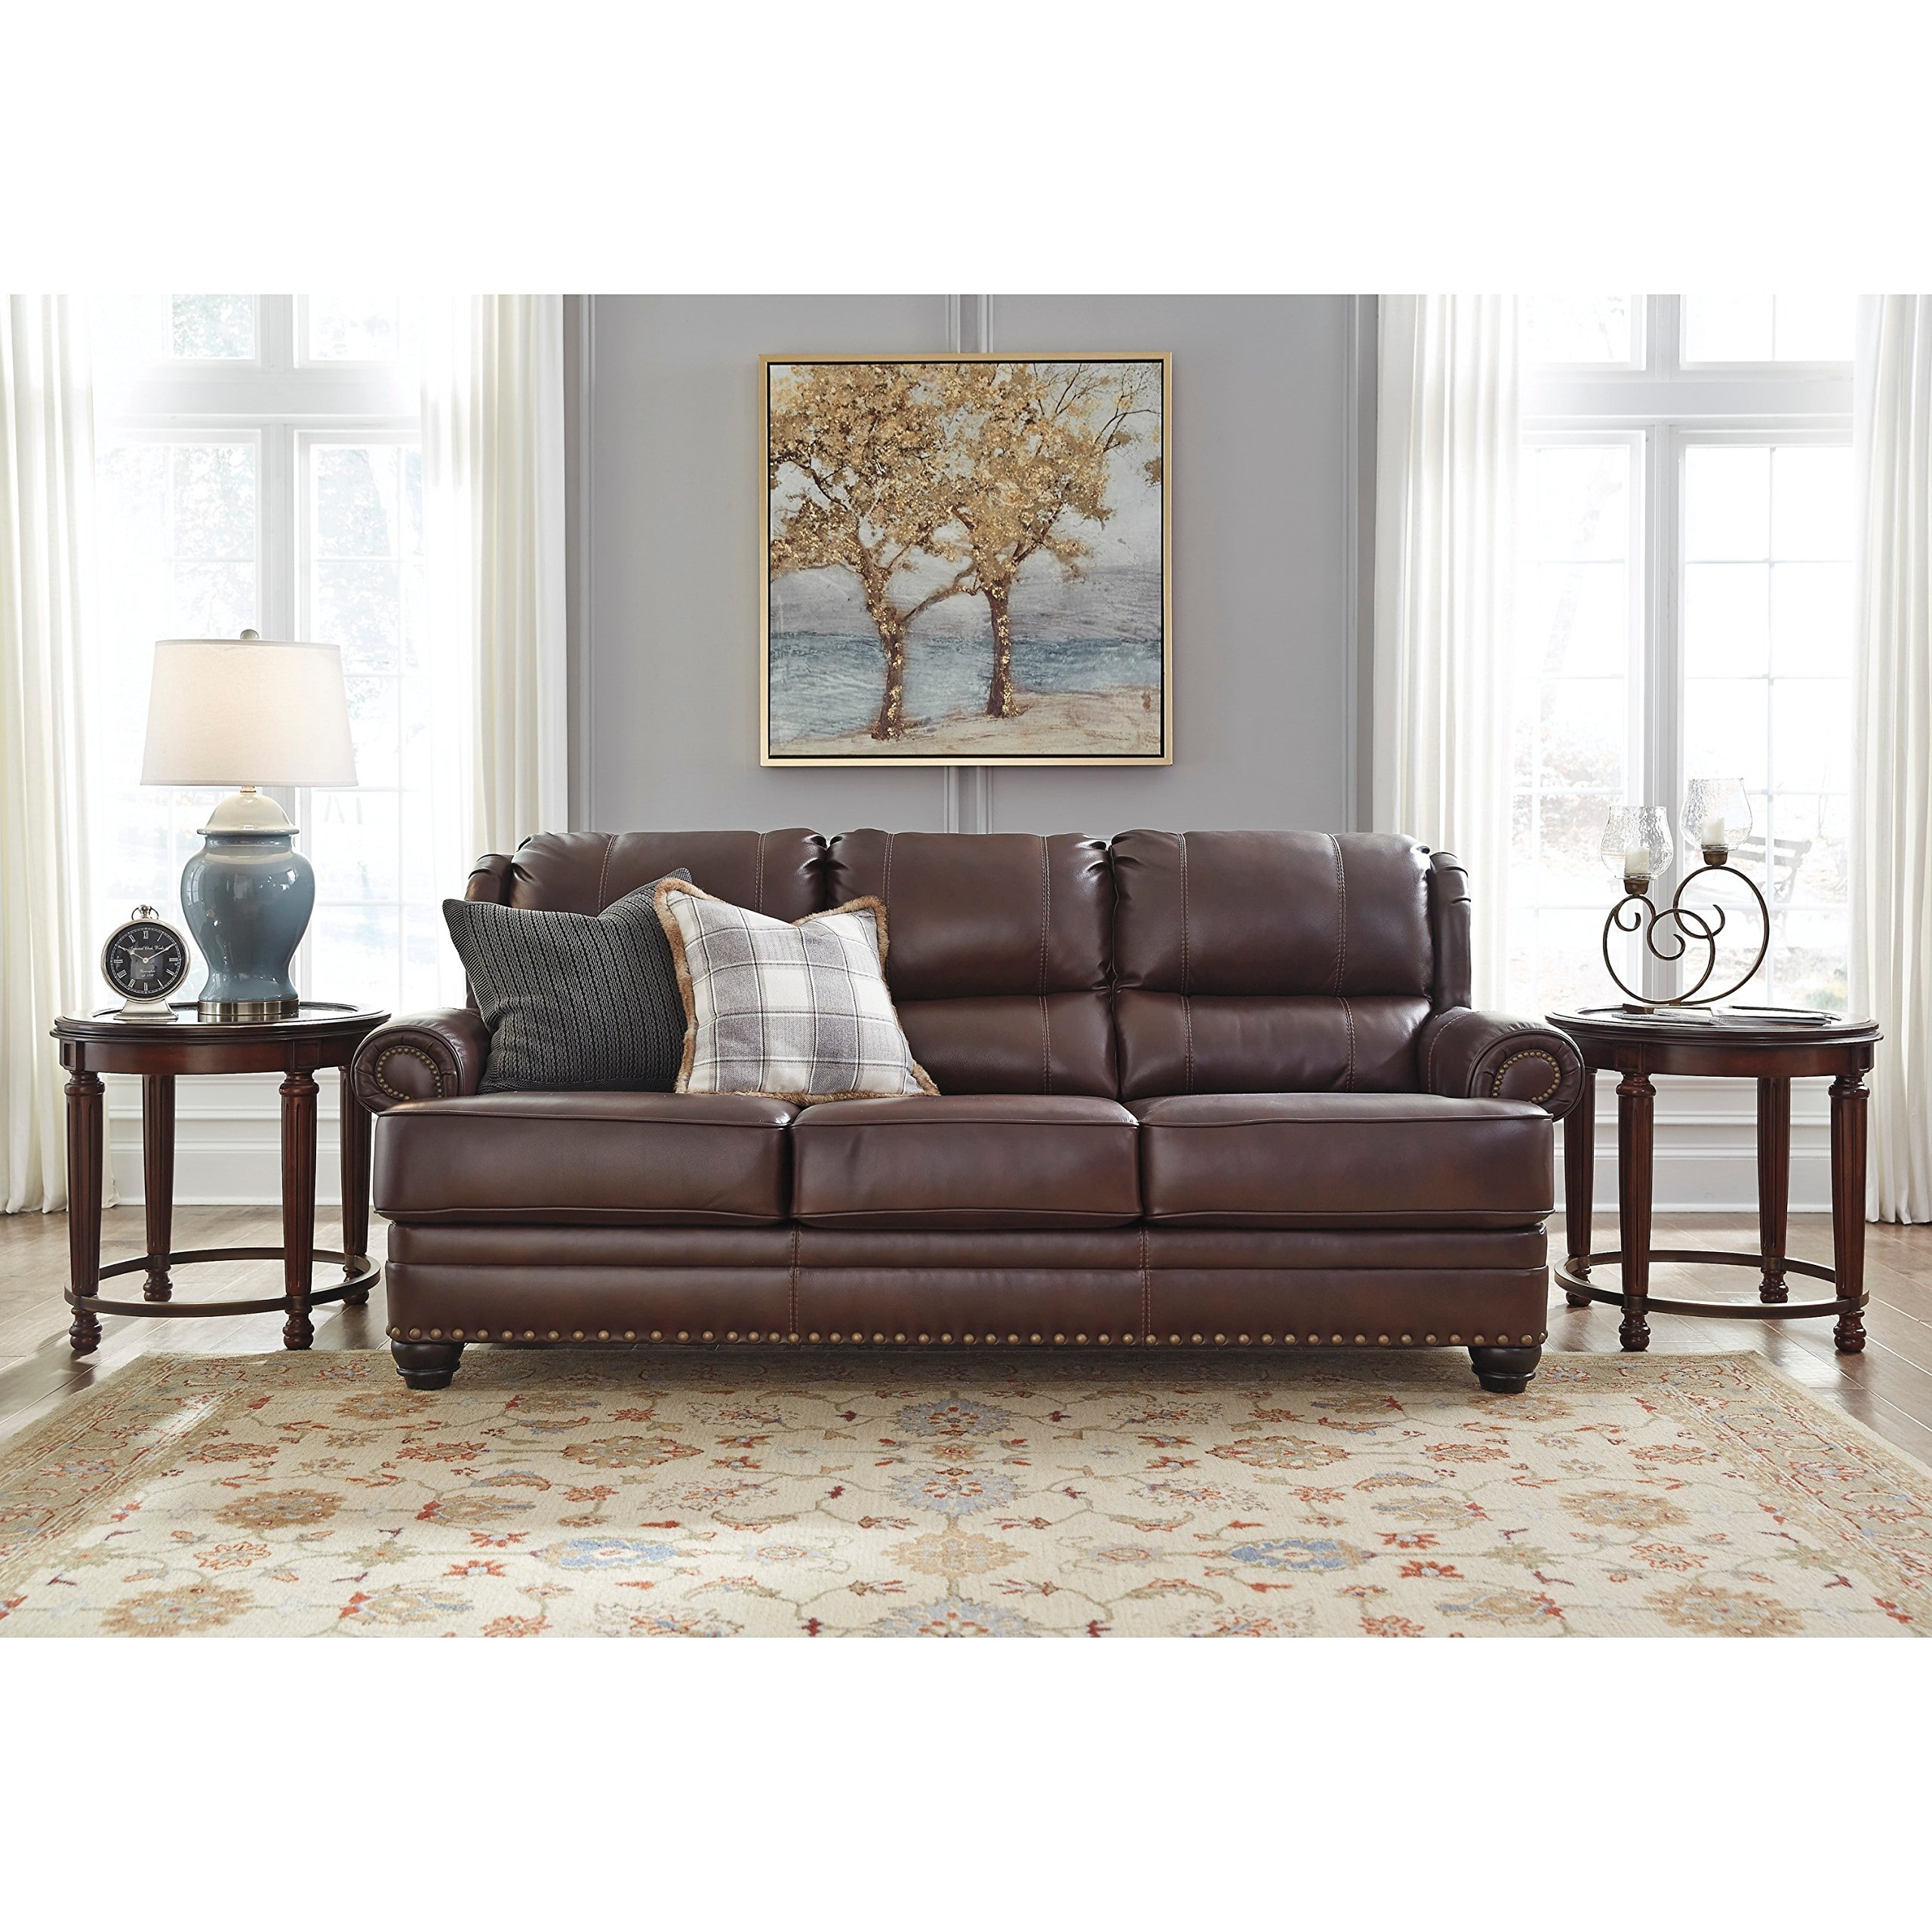 Awesome Cheap Ashley Furniture Sofa Tables Find Ashley Furniture Gmtry Best Dining Table And Chair Ideas Images Gmtryco